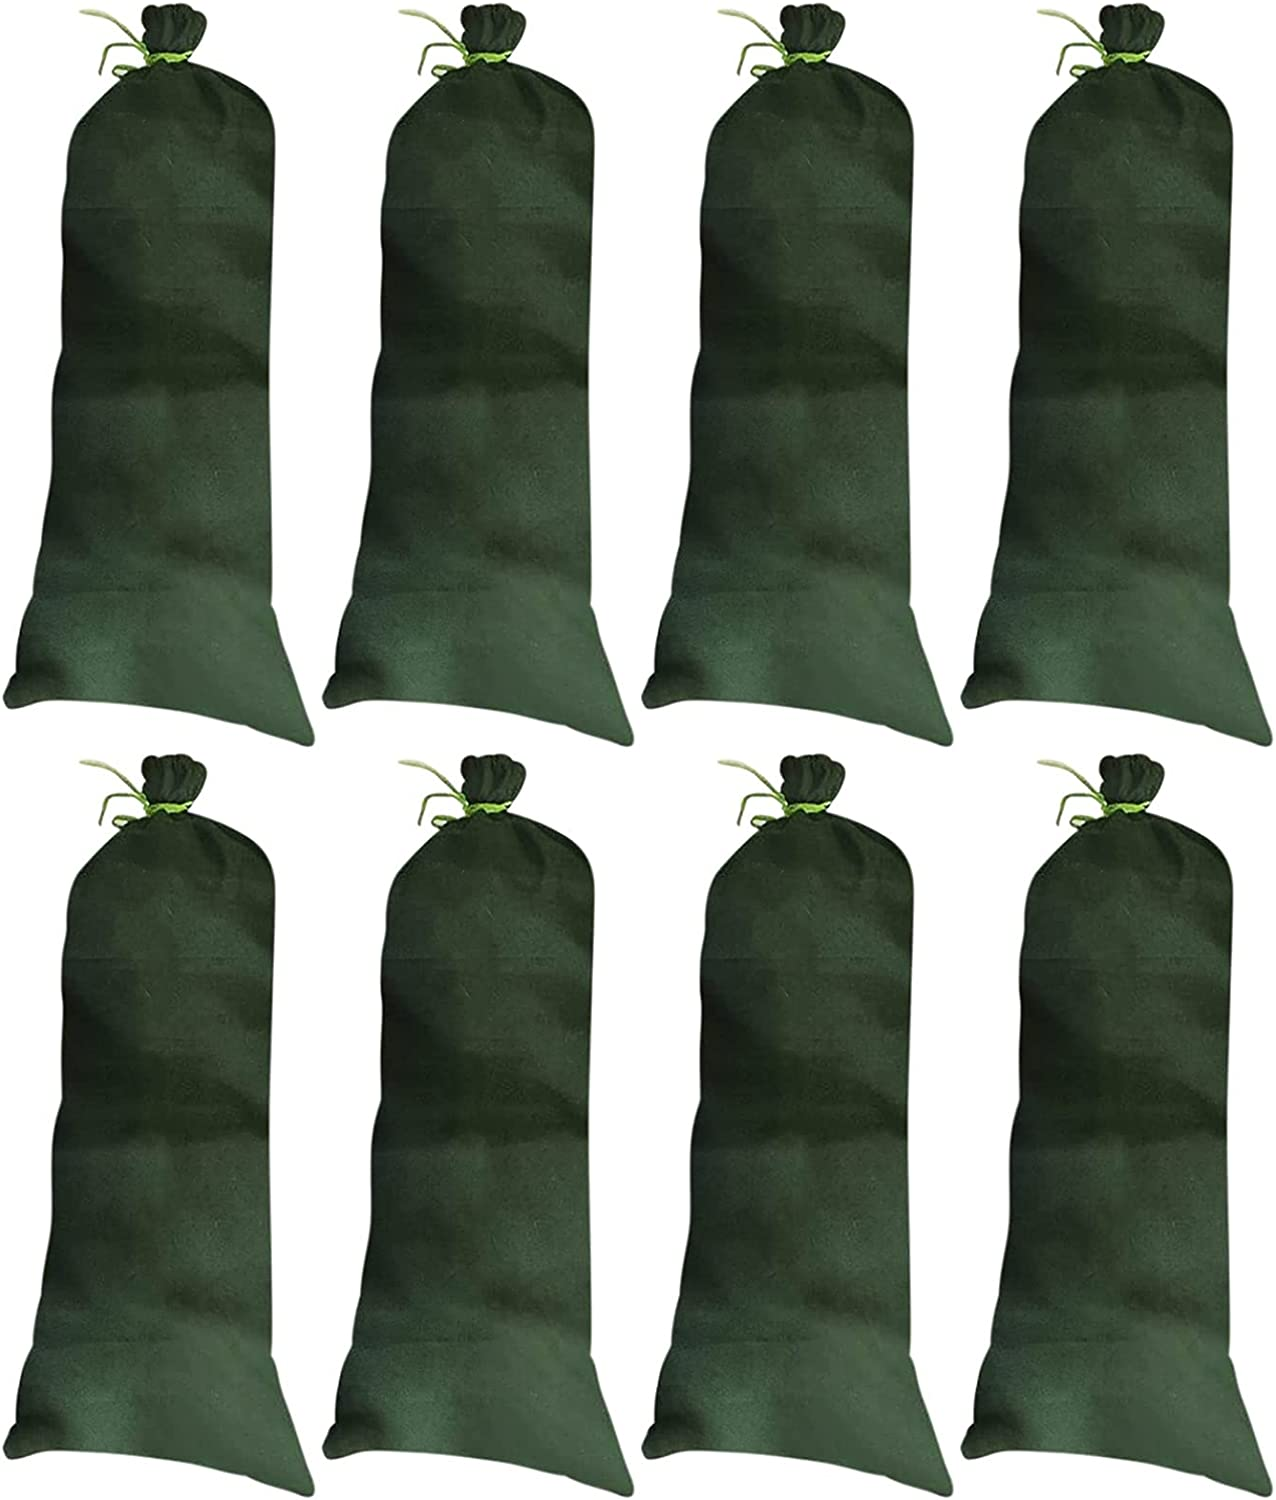 Empty Green Sandbags with Ties Woven Beauty products Polypropylene Sand Bundle B Max 59% OFF